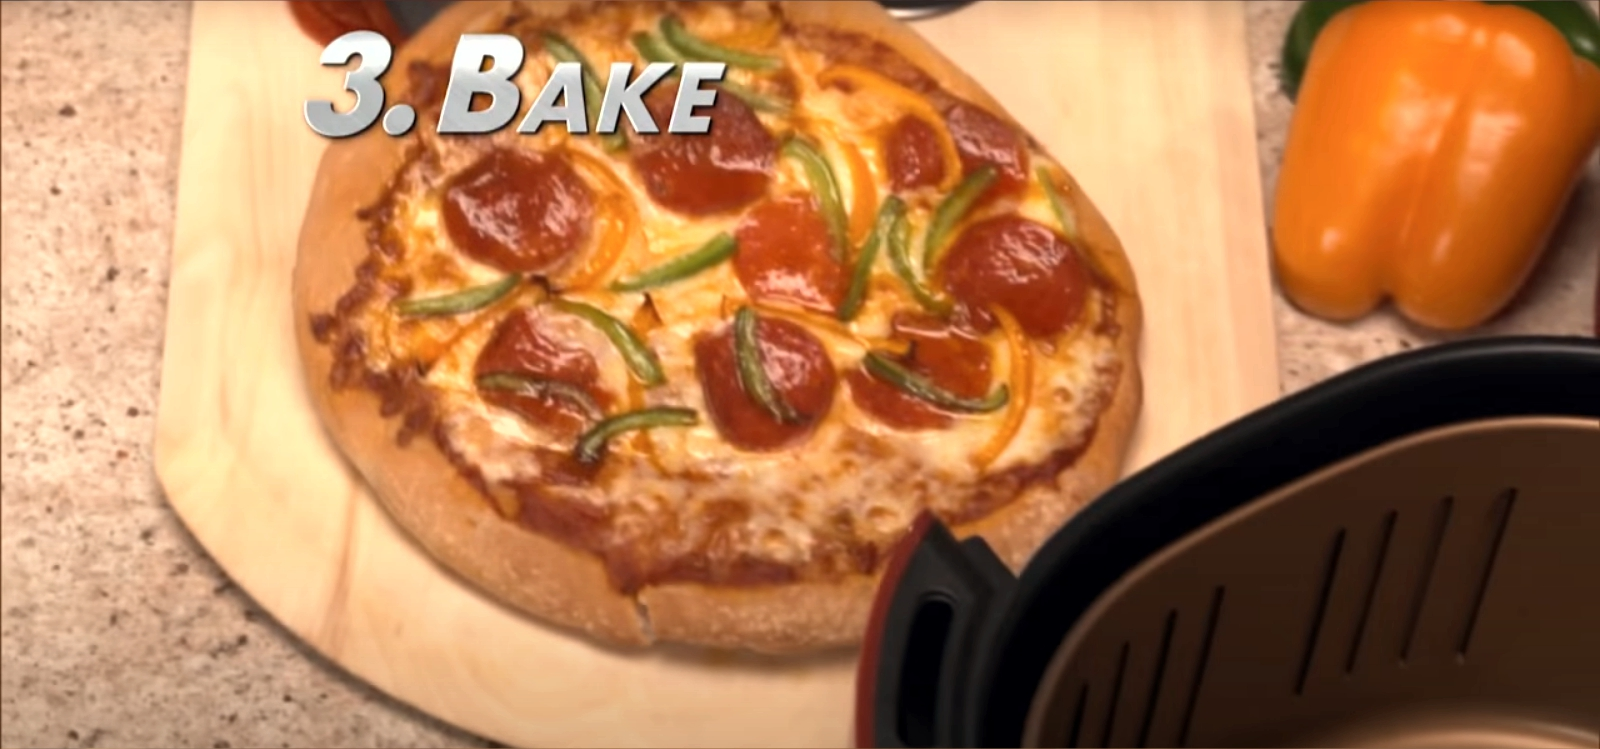 bake with power air fryer